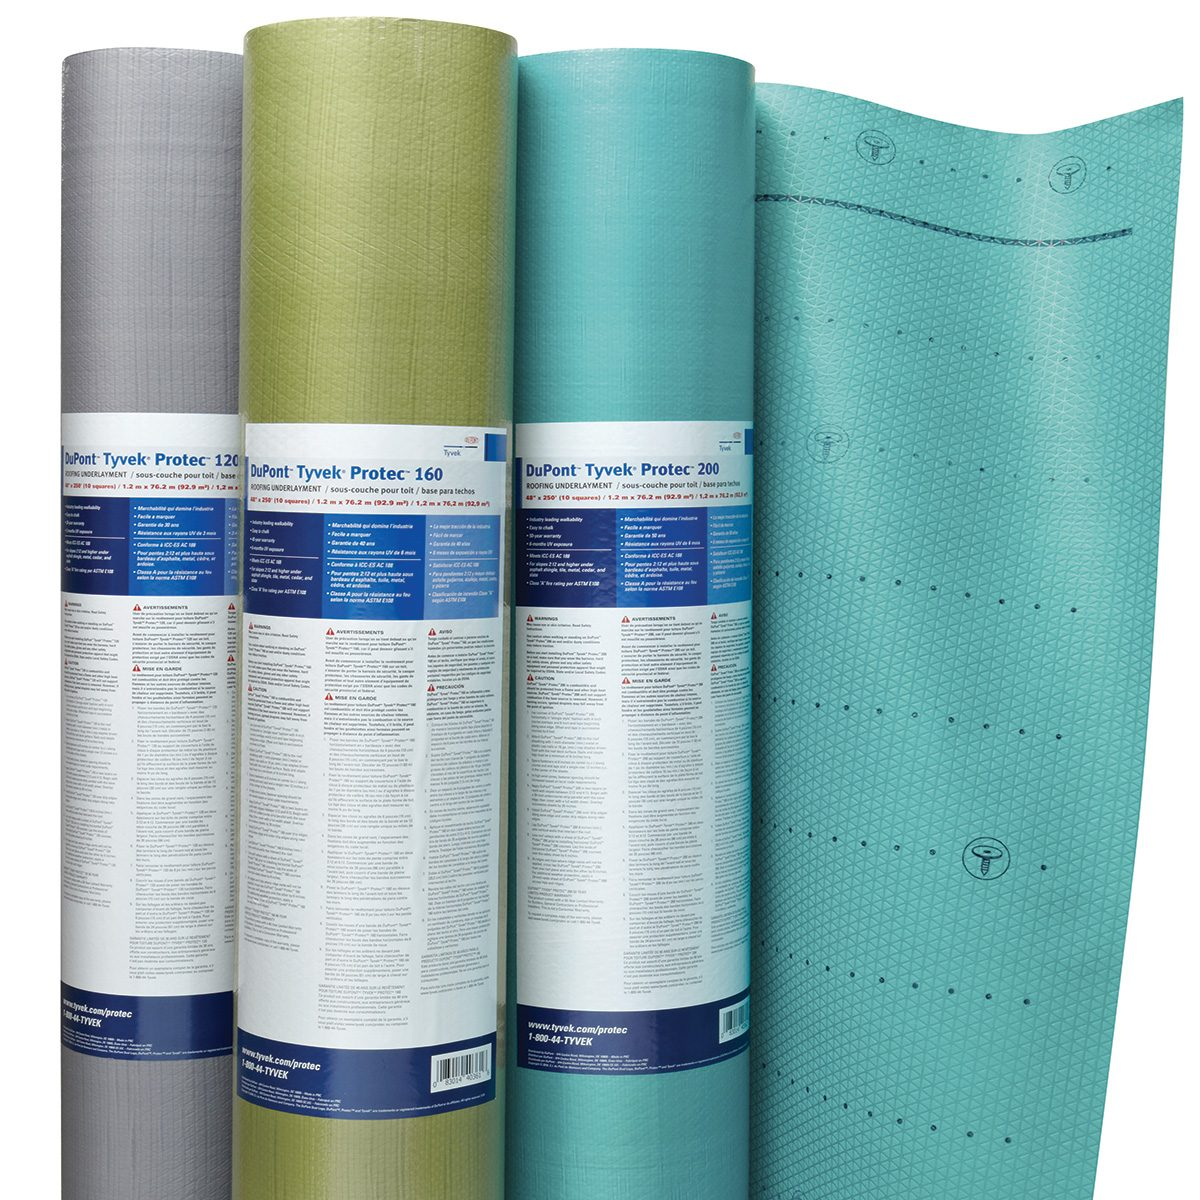 What's next for underlayment?